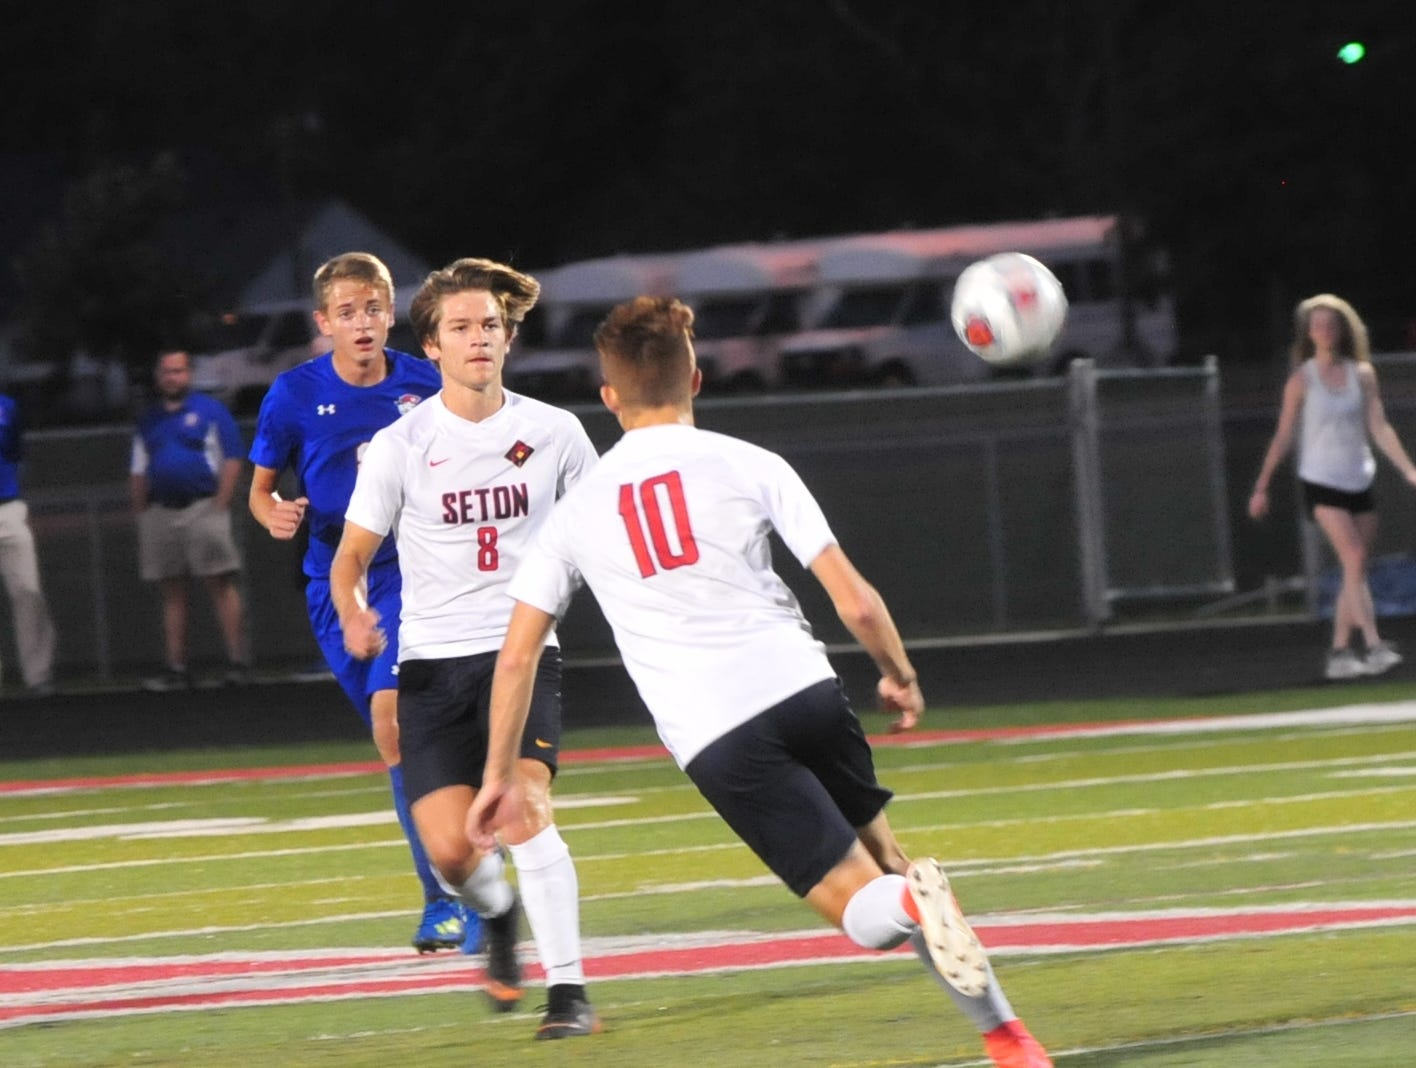 Nick Berger (8) and Sam Brenneke (10) of Seton Catholic move the ball during the IHSAA Class A Sectional 42 boys soccer semifinal against Union County at Knightstown Wednesday, Oct. 3, 2018.